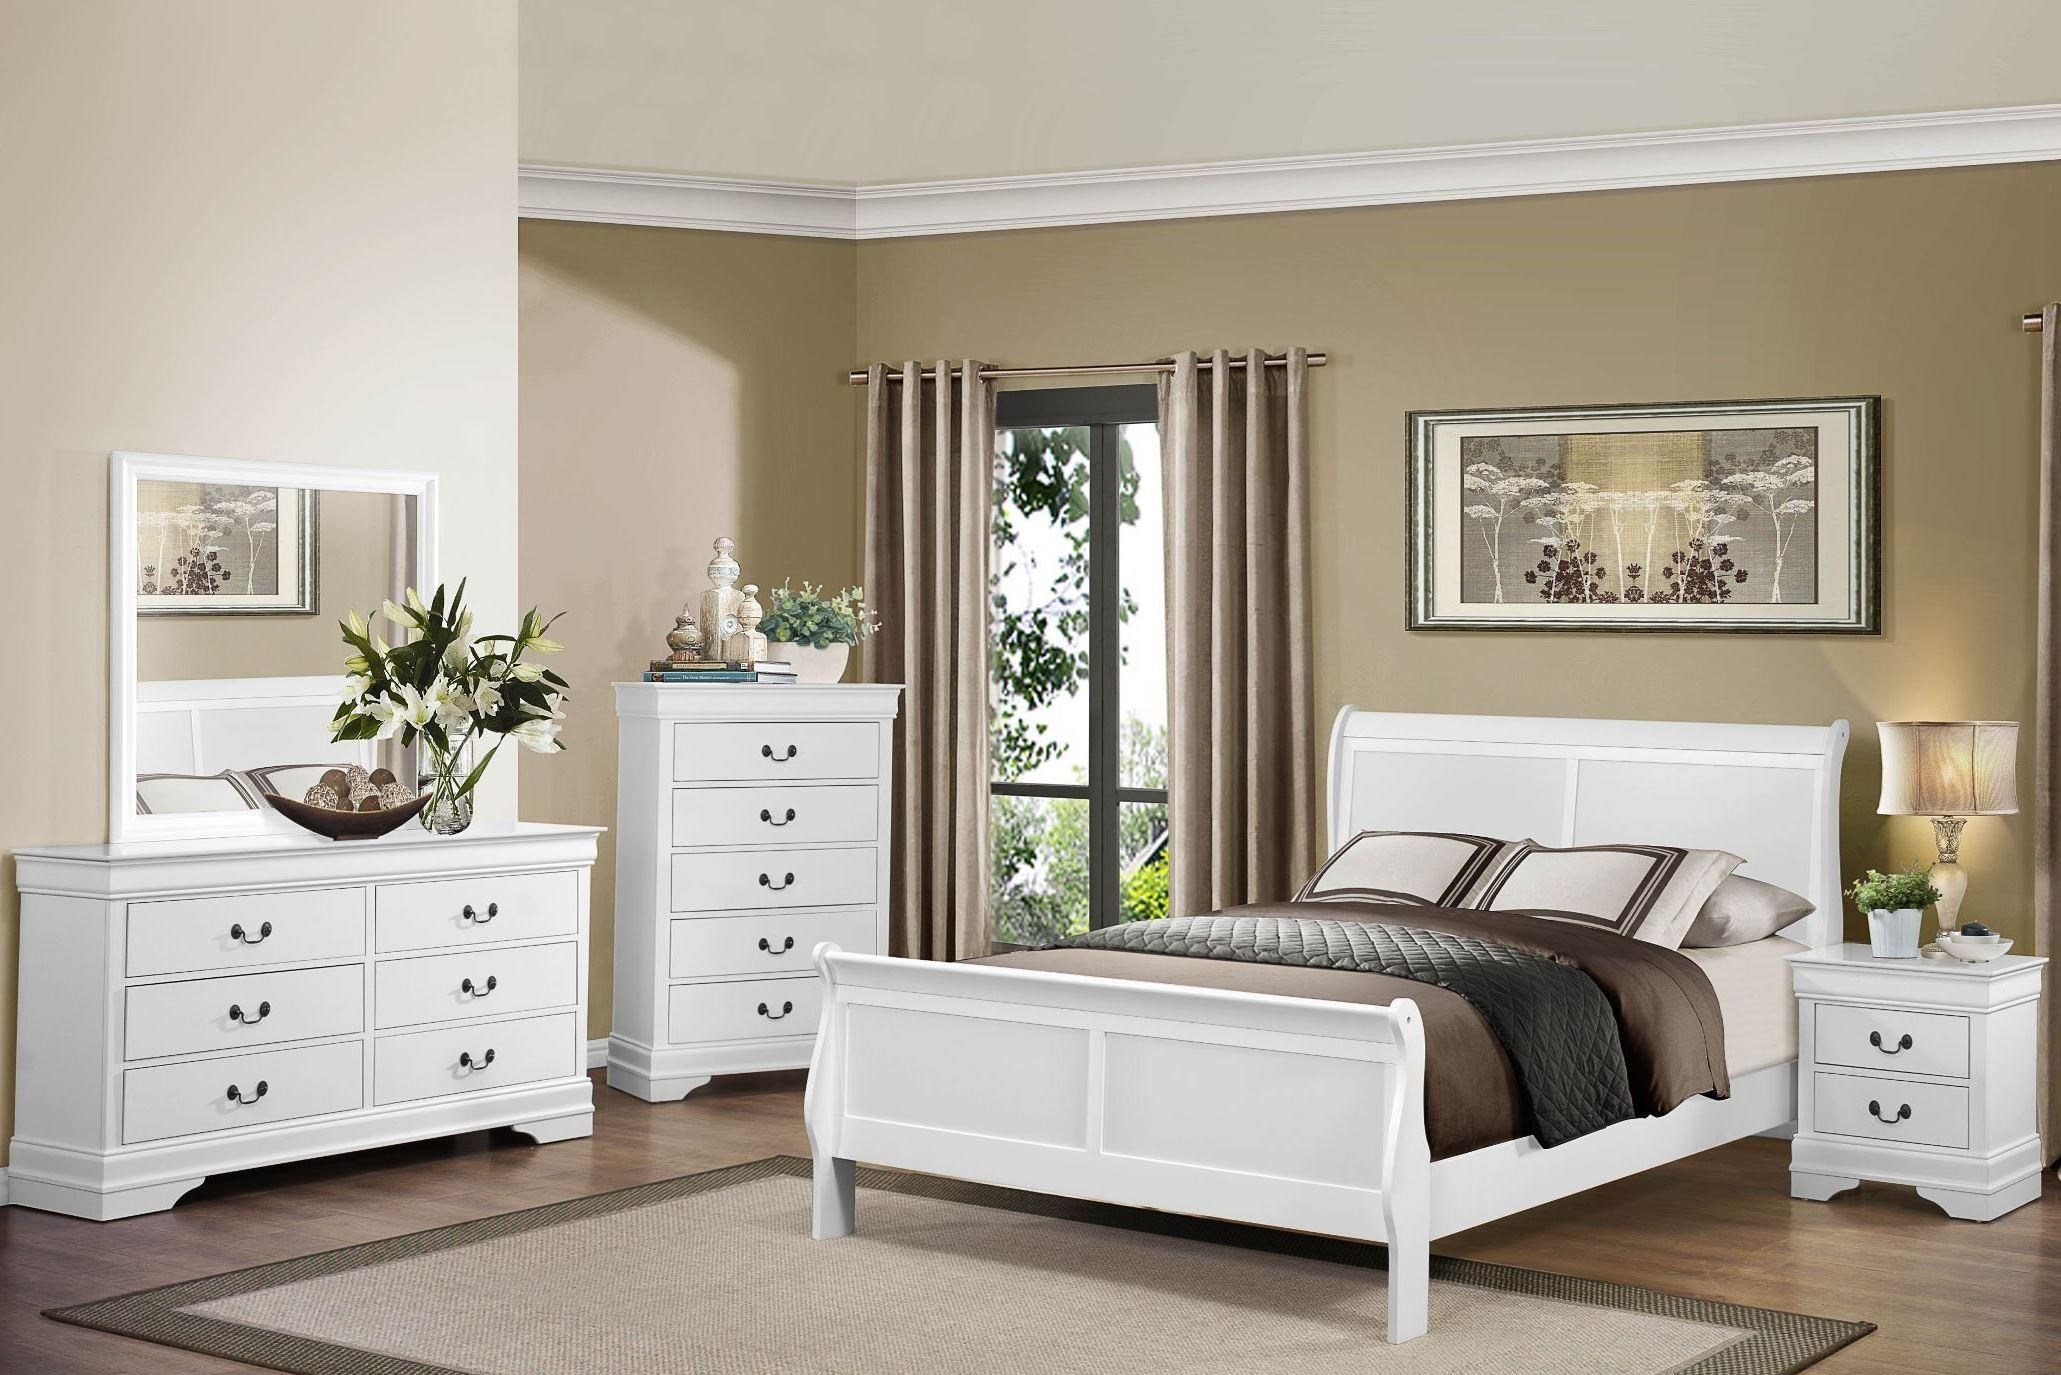 Homelegance Mayville Queen White Bedroom Group - Item Number: GRP-2147-WHITE-QUEENSET